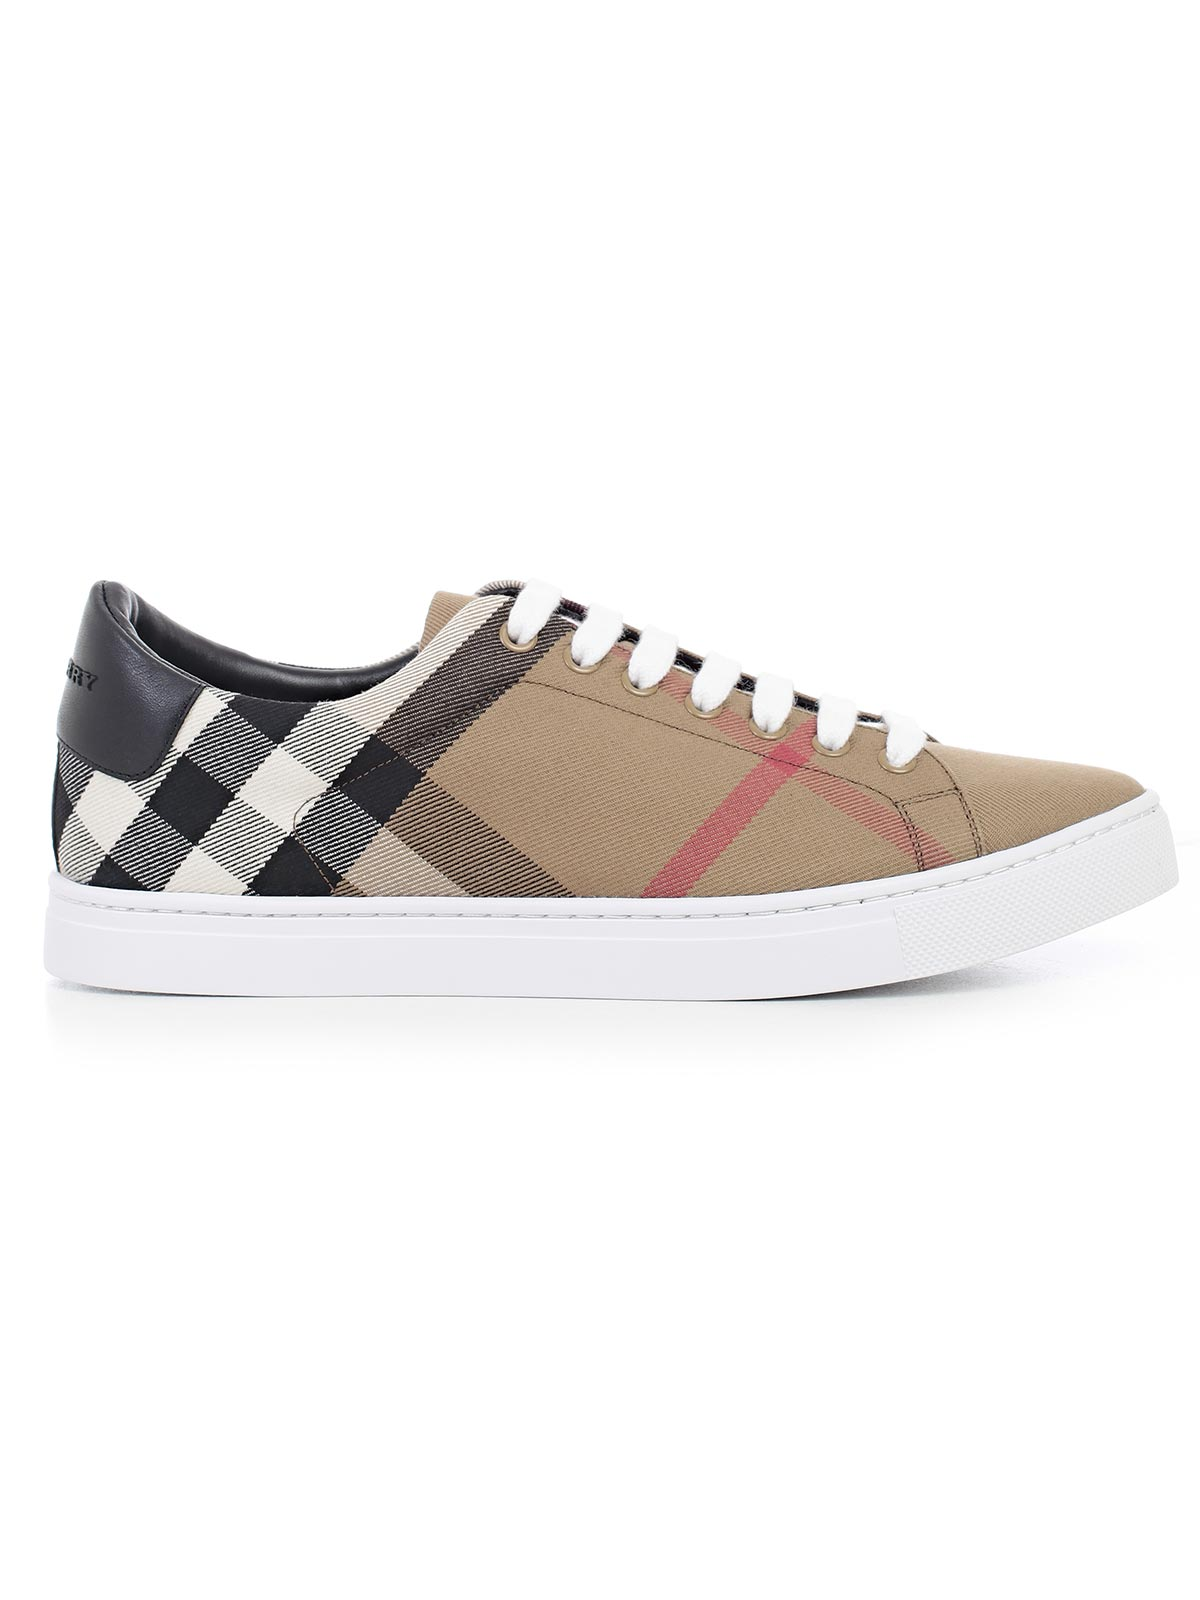 Picture of Burberry Sneakers